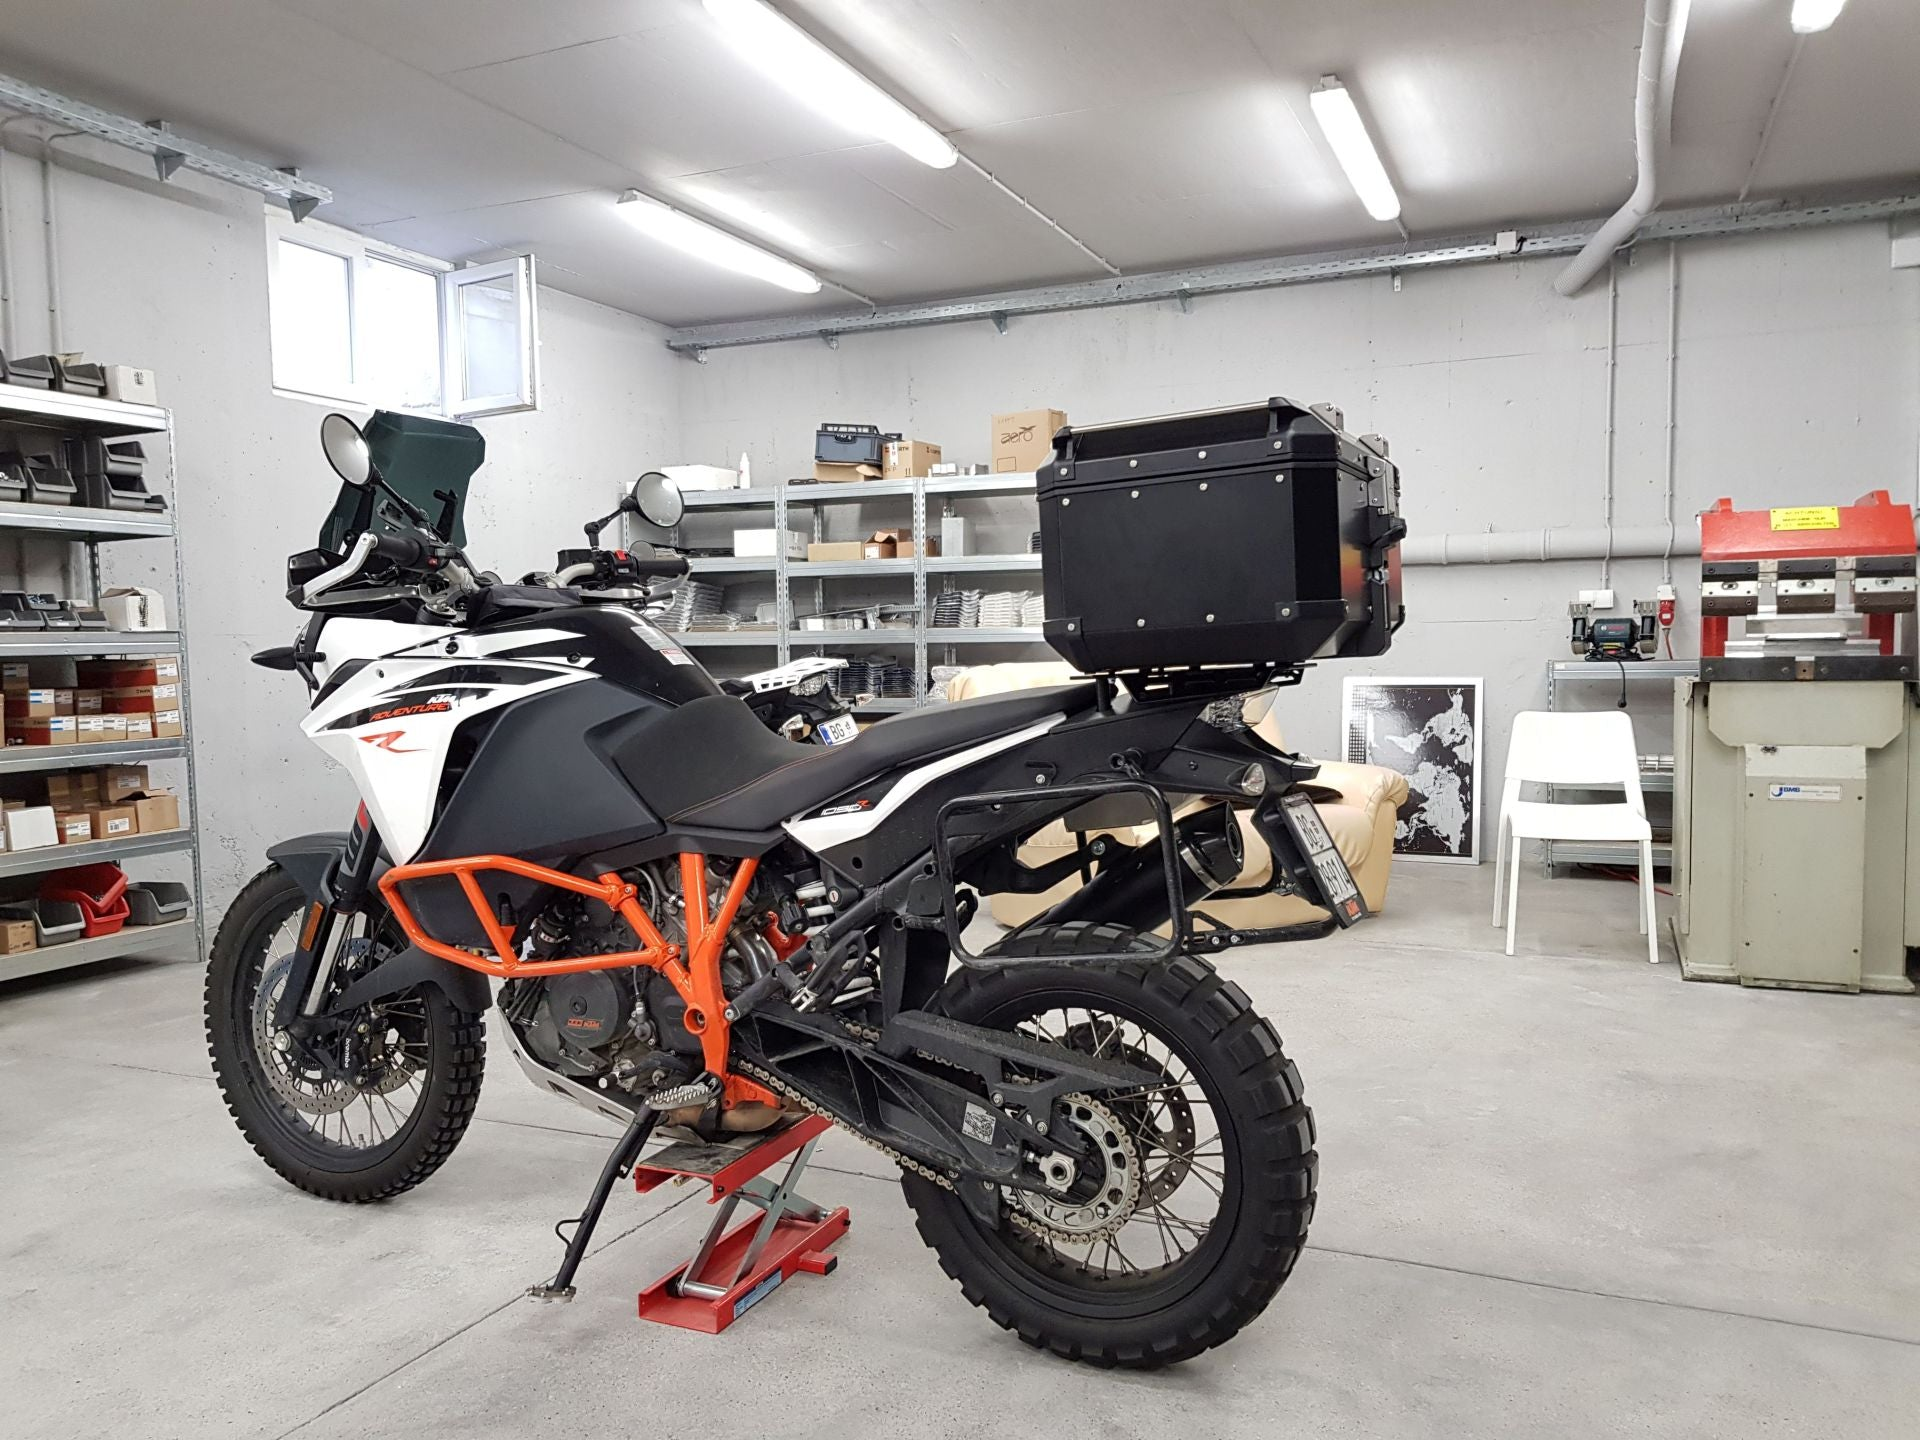 Perun moto KTM 1090/1190/1290 Top luggage rack and Givi/Kappa top case